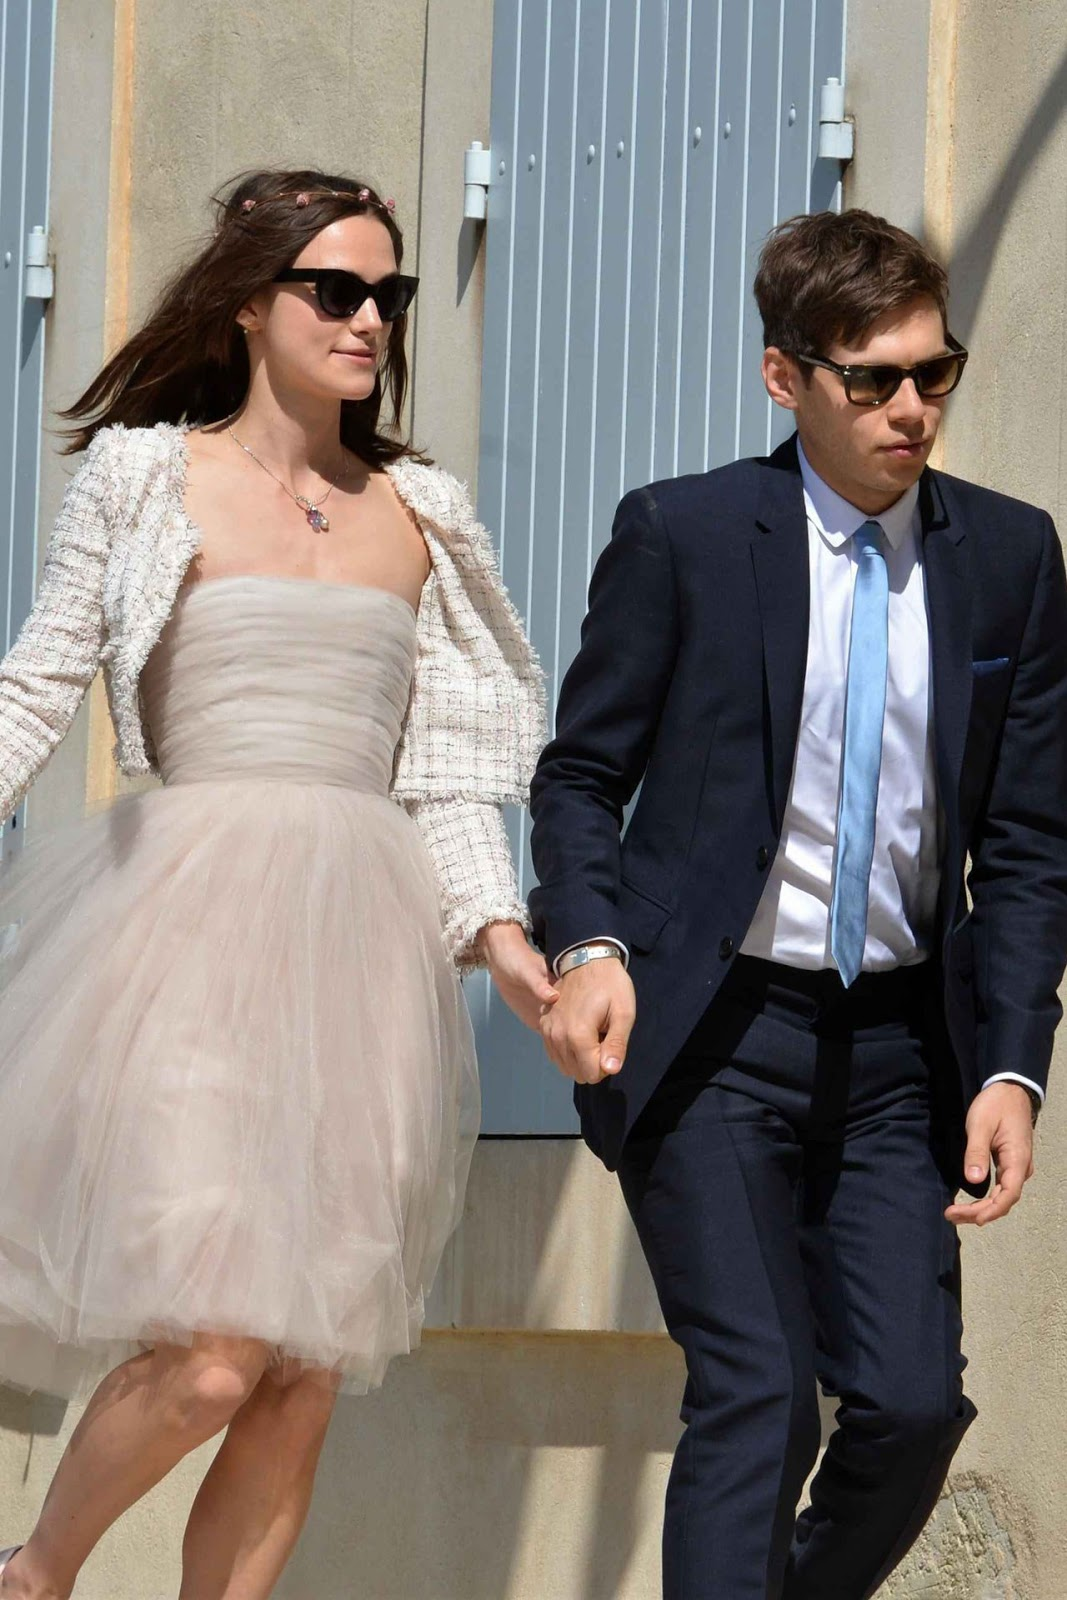 Keira Knightley in Chanel at her Wedding with James Righton